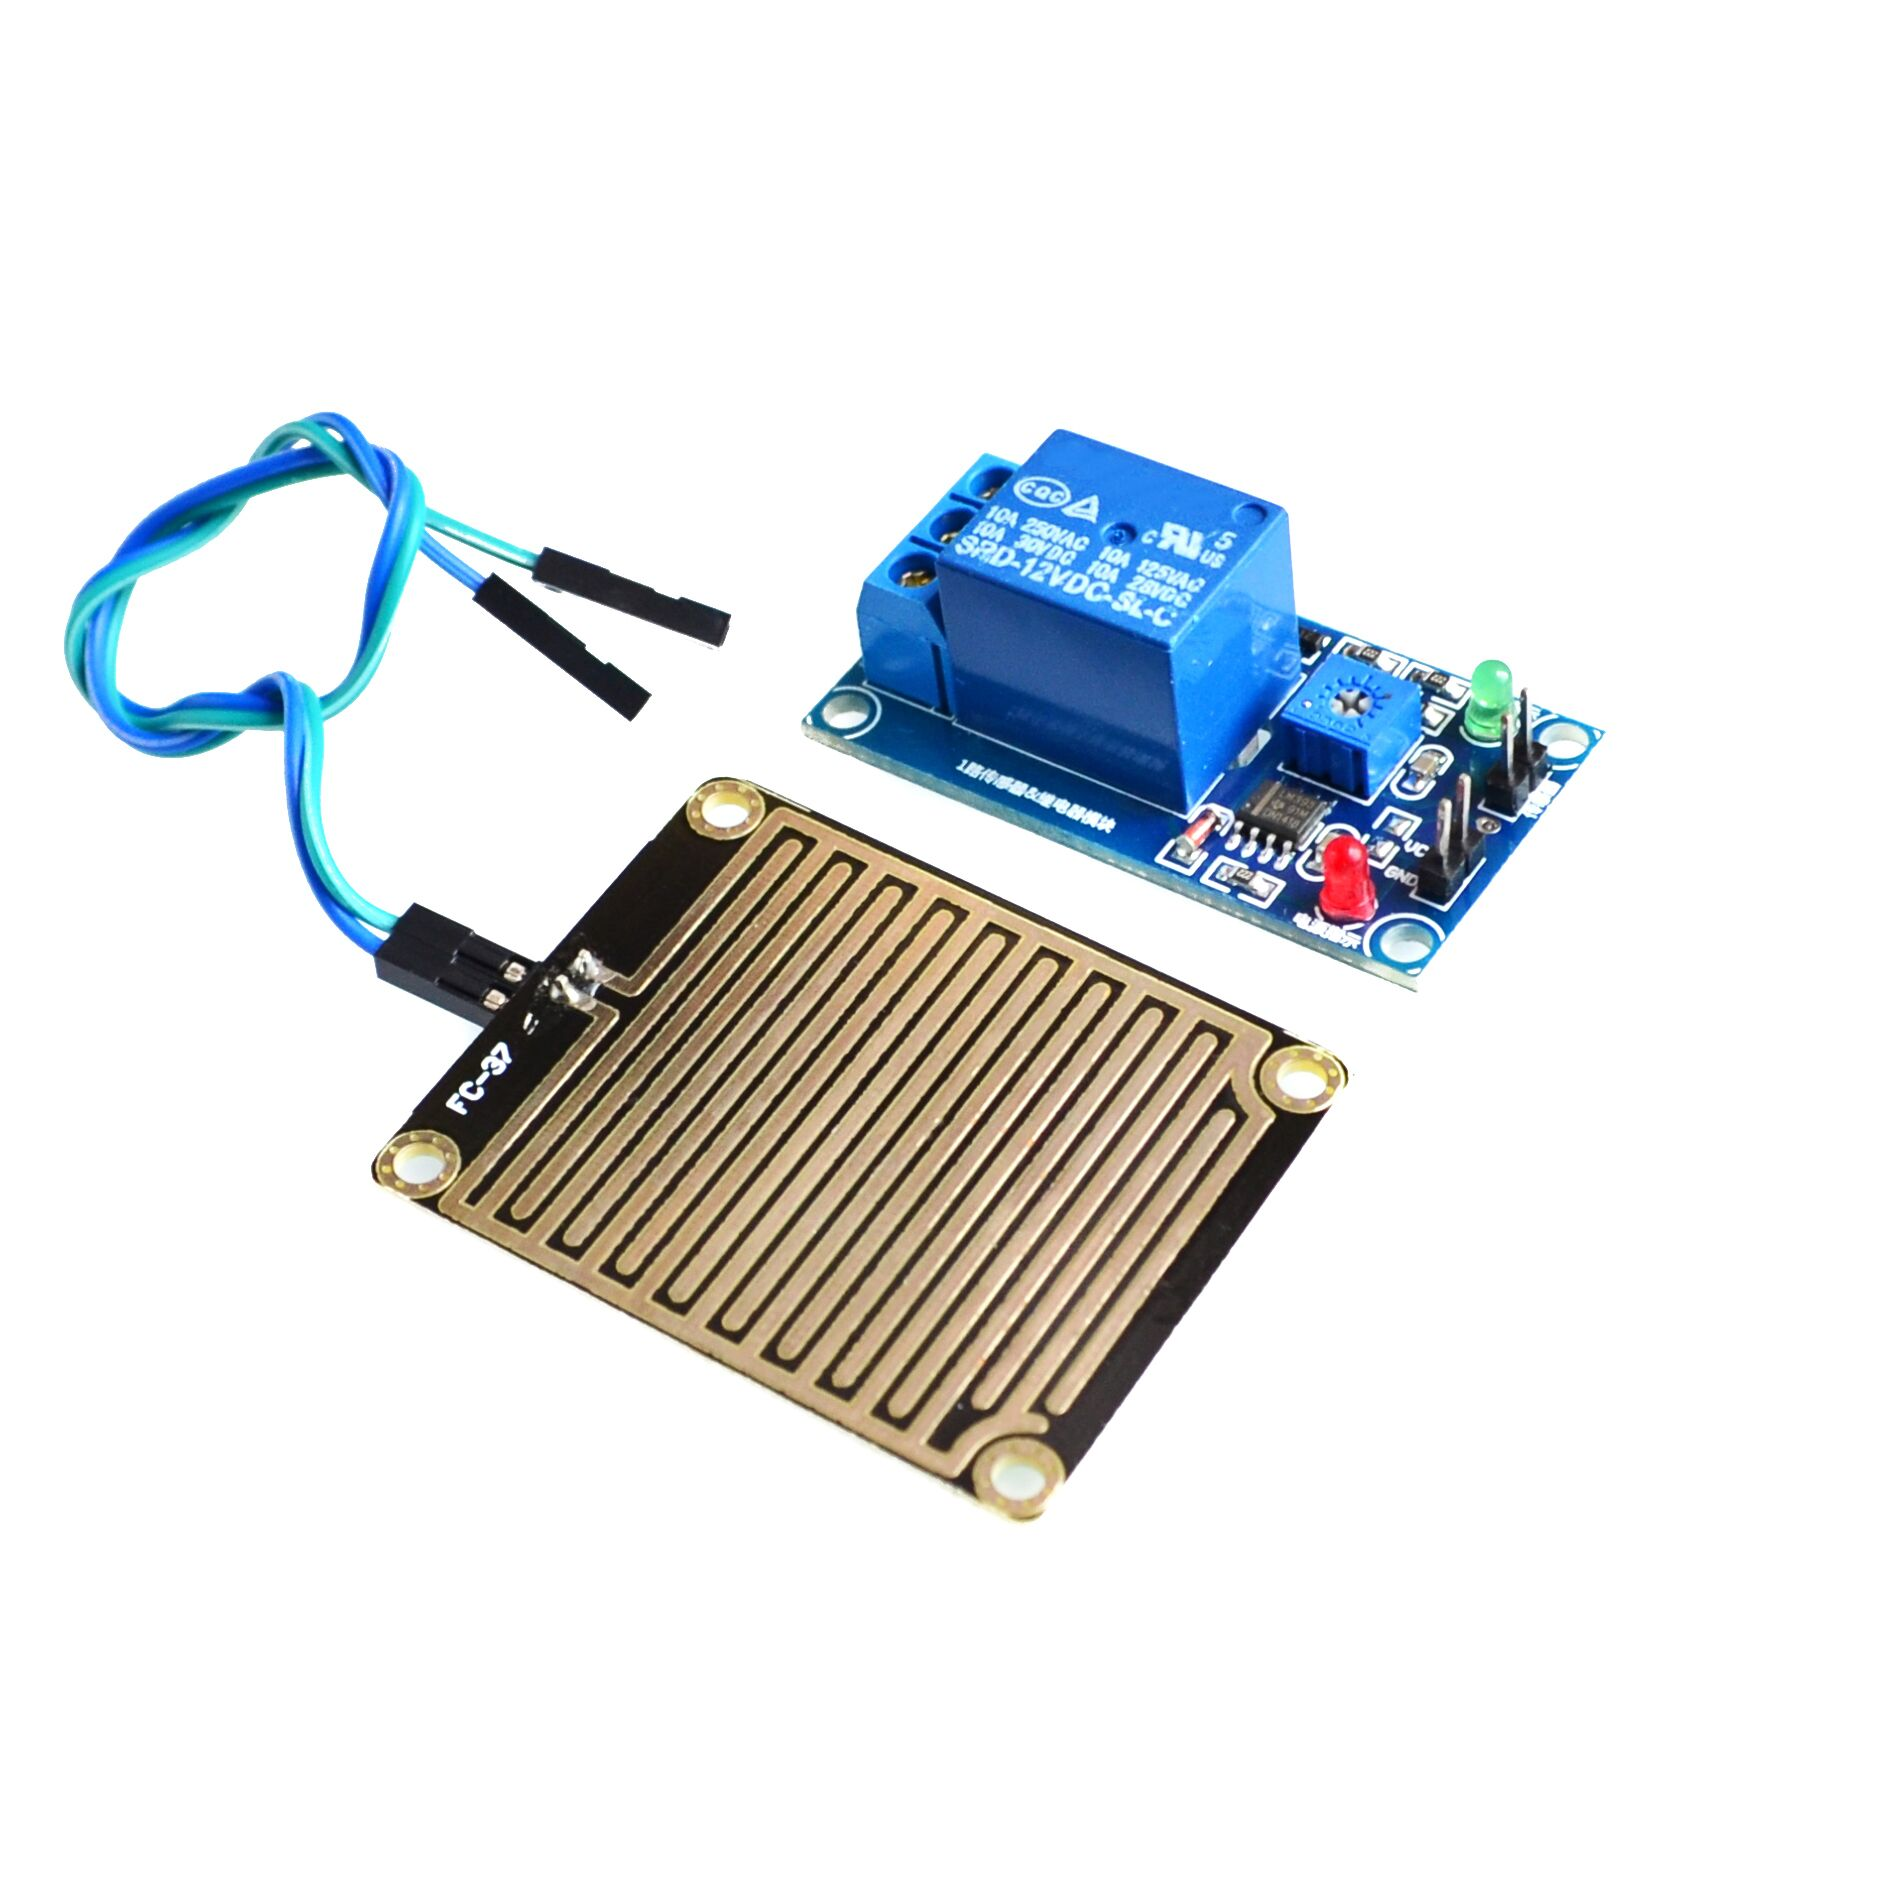 Dc 12v Rain Water Sensor Module Relay Control For Arduino Interface Microcontrollers At89c2051 And At894051 We Keep The Circuit Robot Kit